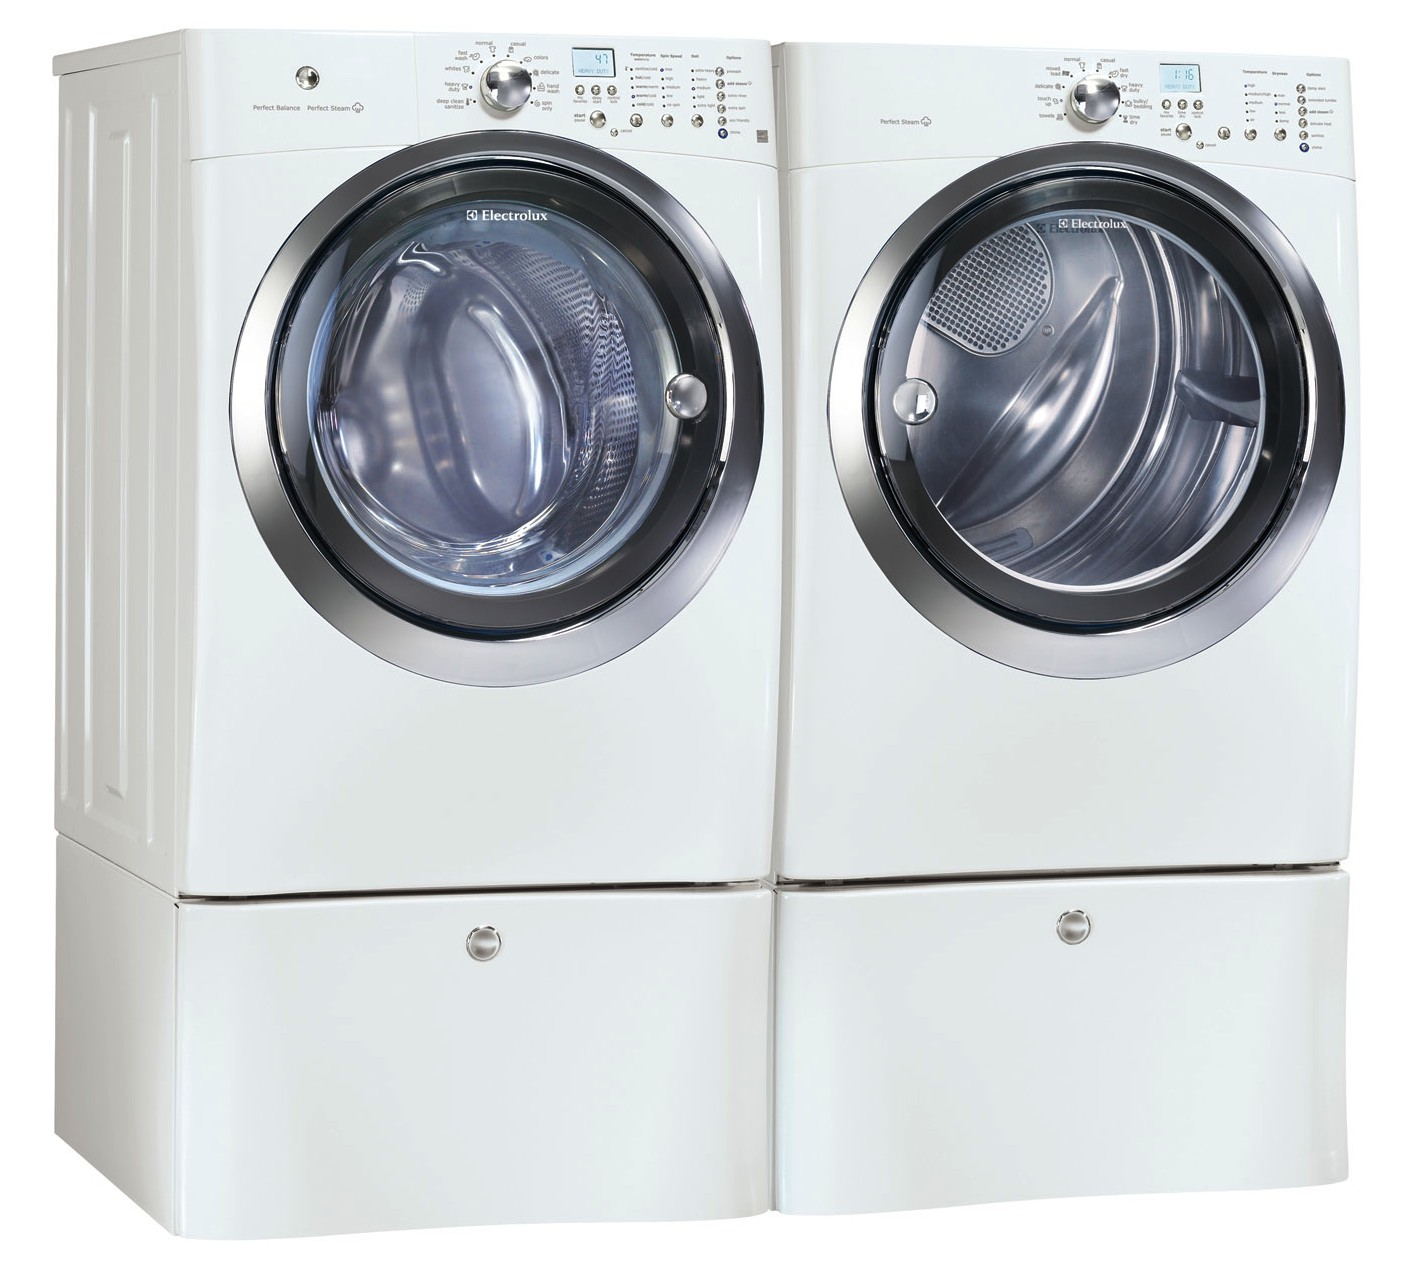 Electrolux white front load washer and steam gas dryer Electrolux washer and dryer